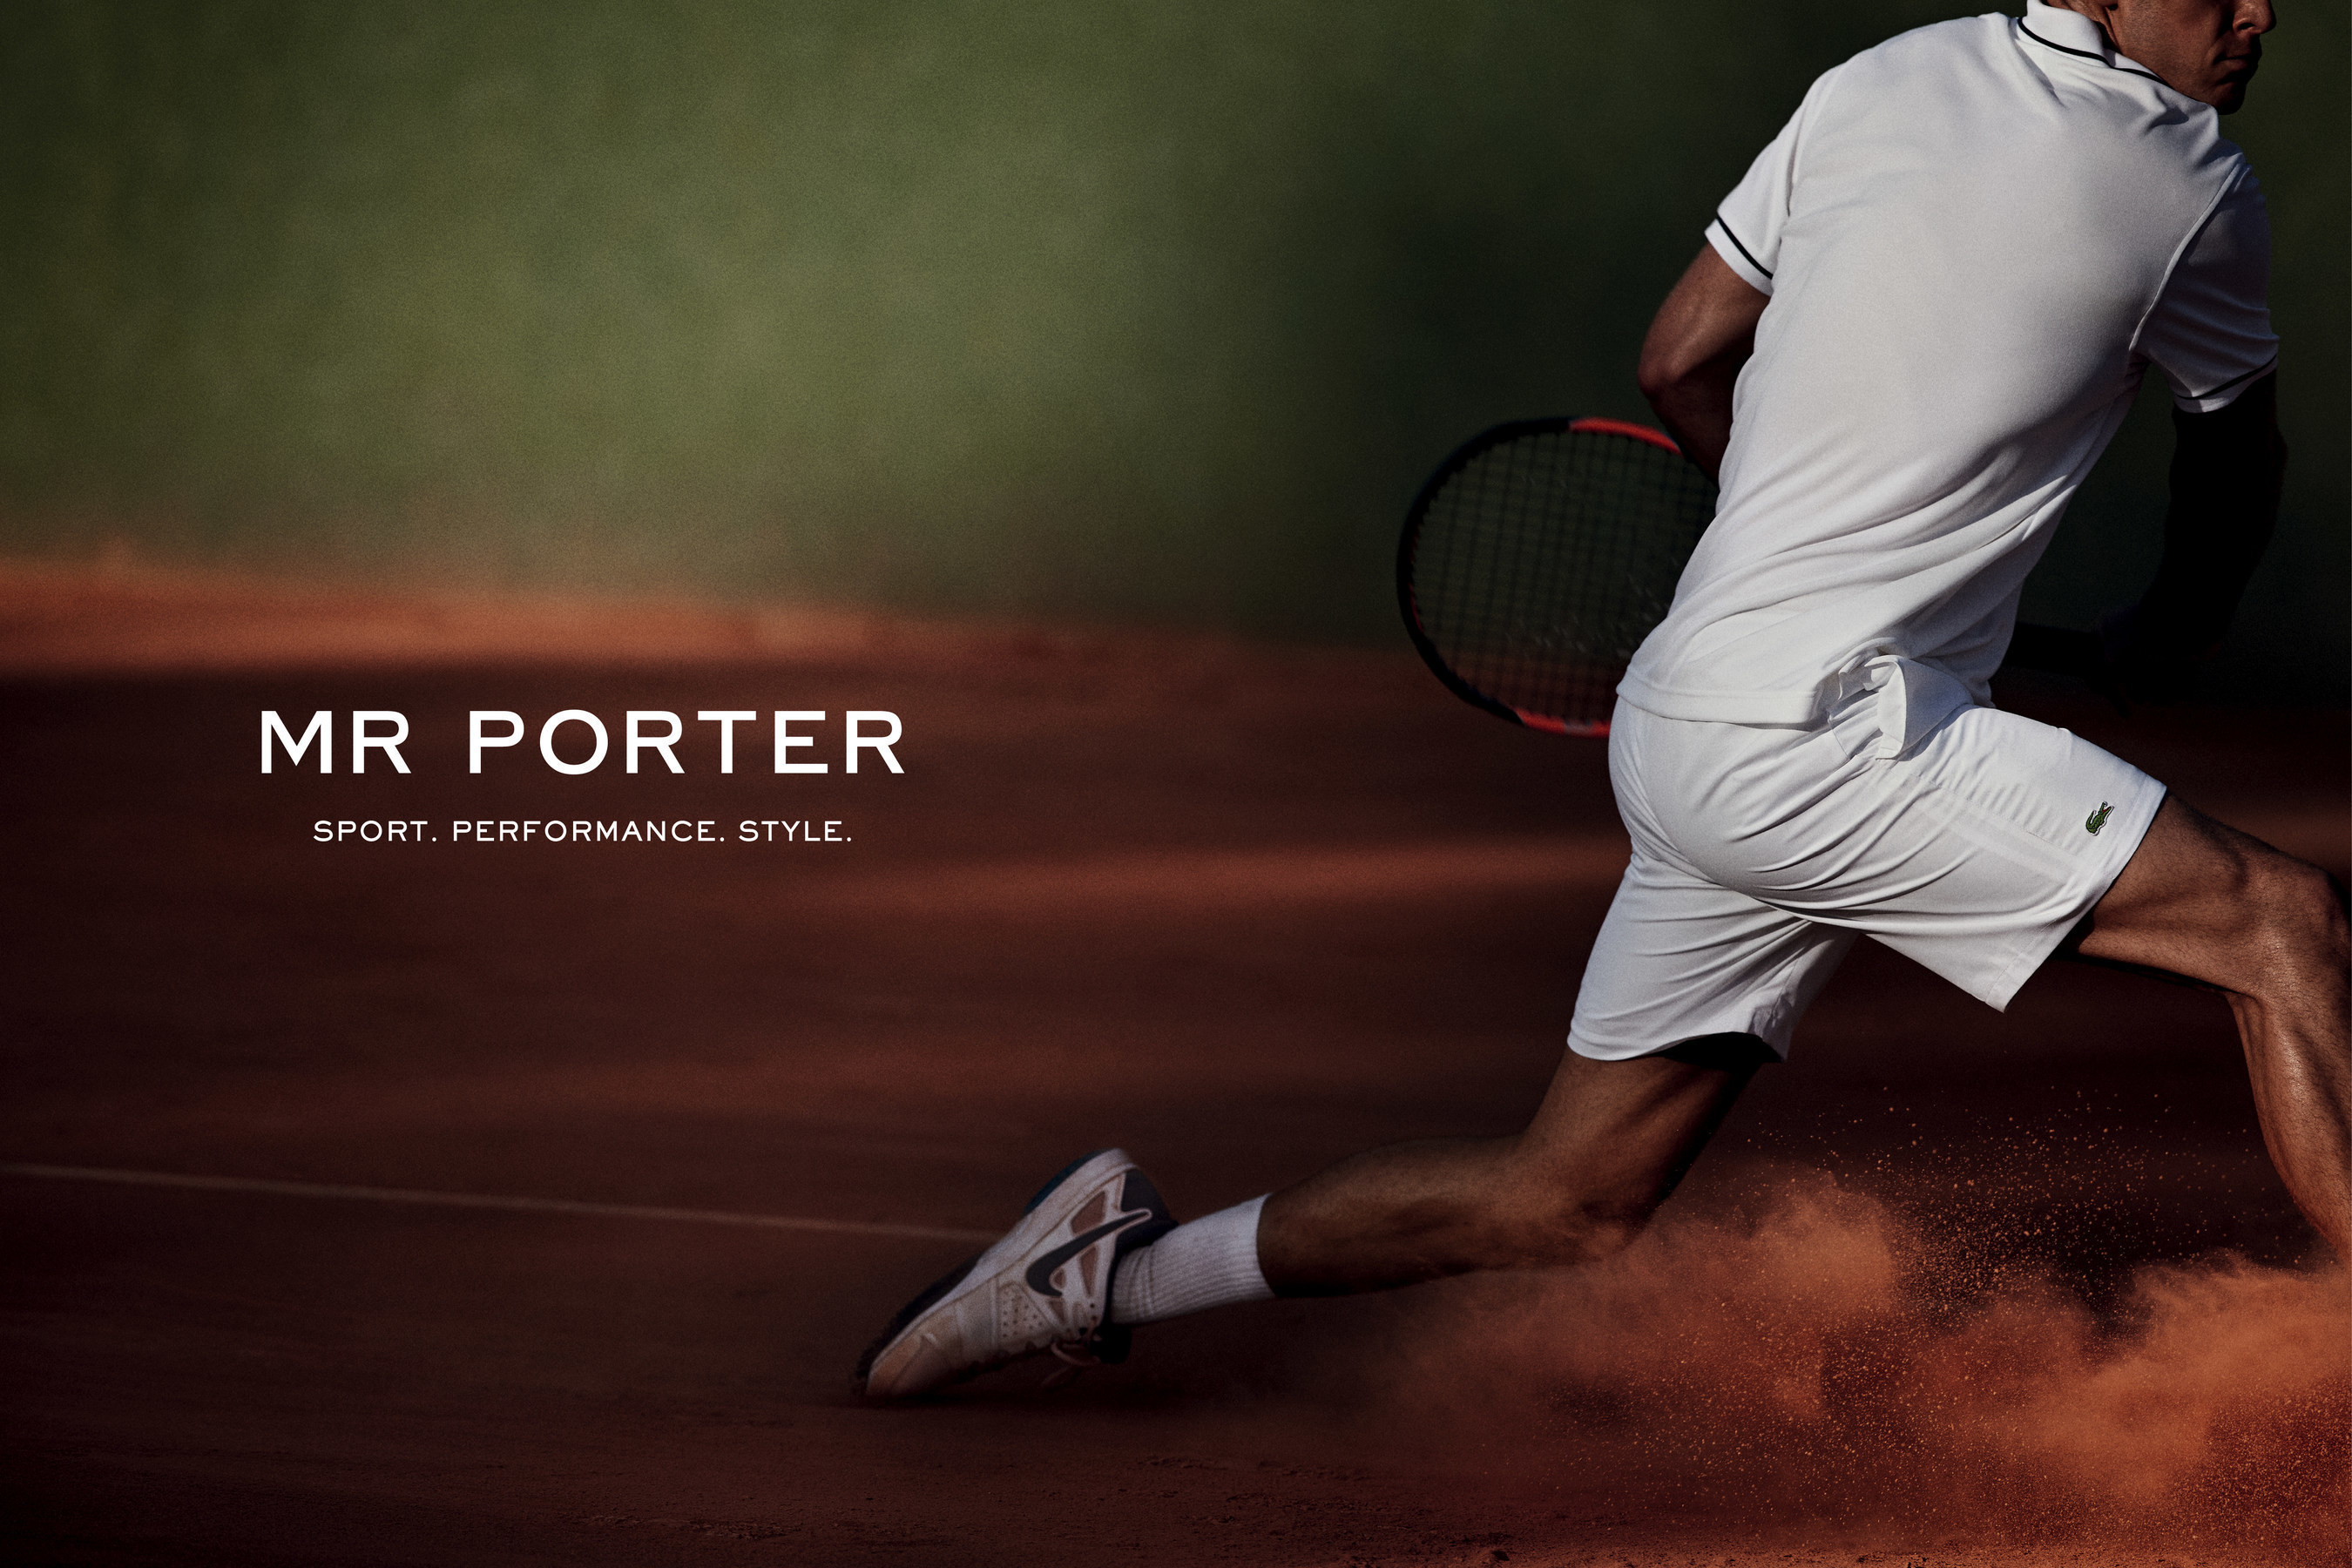 MRPORTER.COM, the award-winning global retail destination for men's style, will launch a new athletic and performance category titled MR PORTER SPORT on 28 April 2015